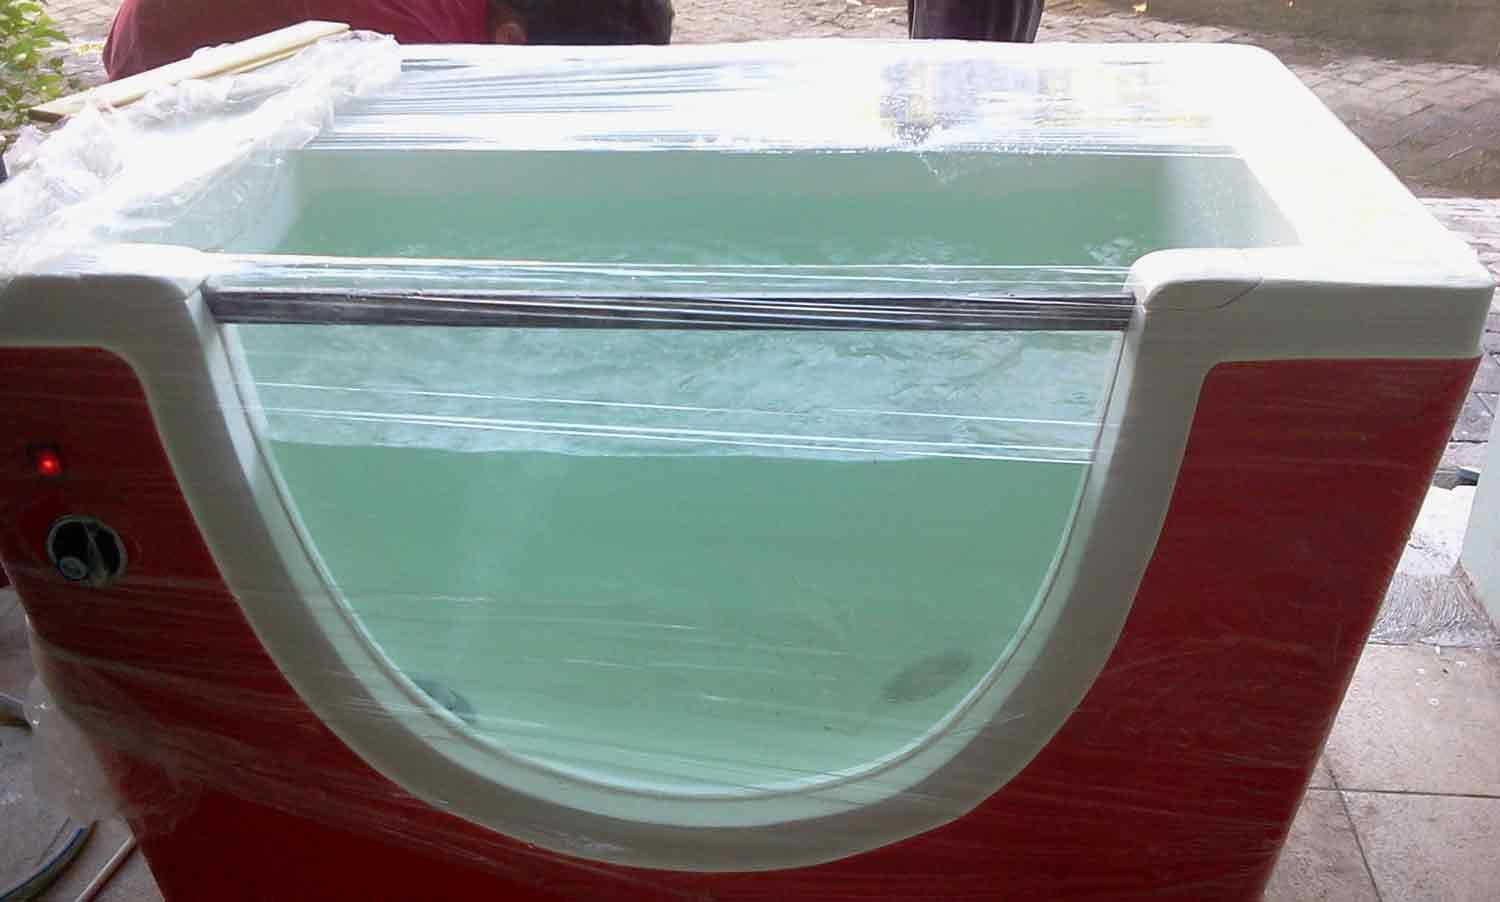 Sell Bathtub Jacuzzi Pijat Hydrotherapy From Indonesia By CV Sejahtera BersamaCheap Price